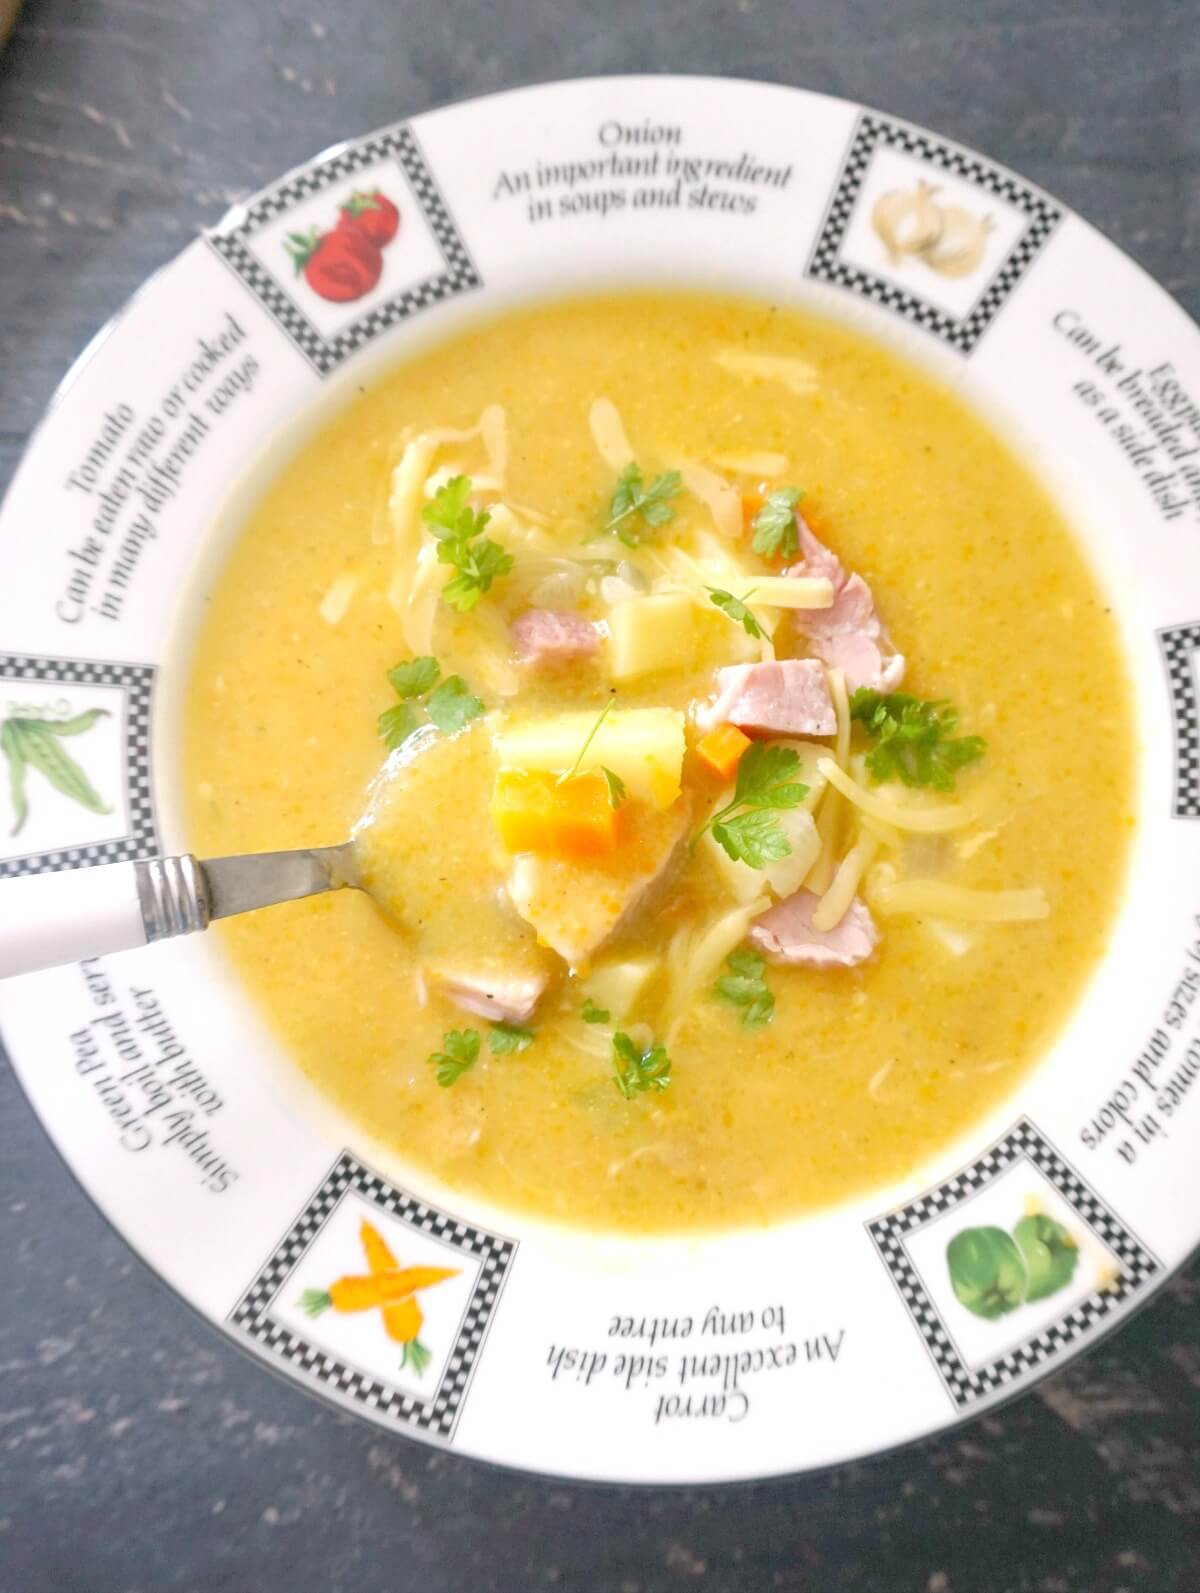 Overhead shoot of plate with creamy potato soup